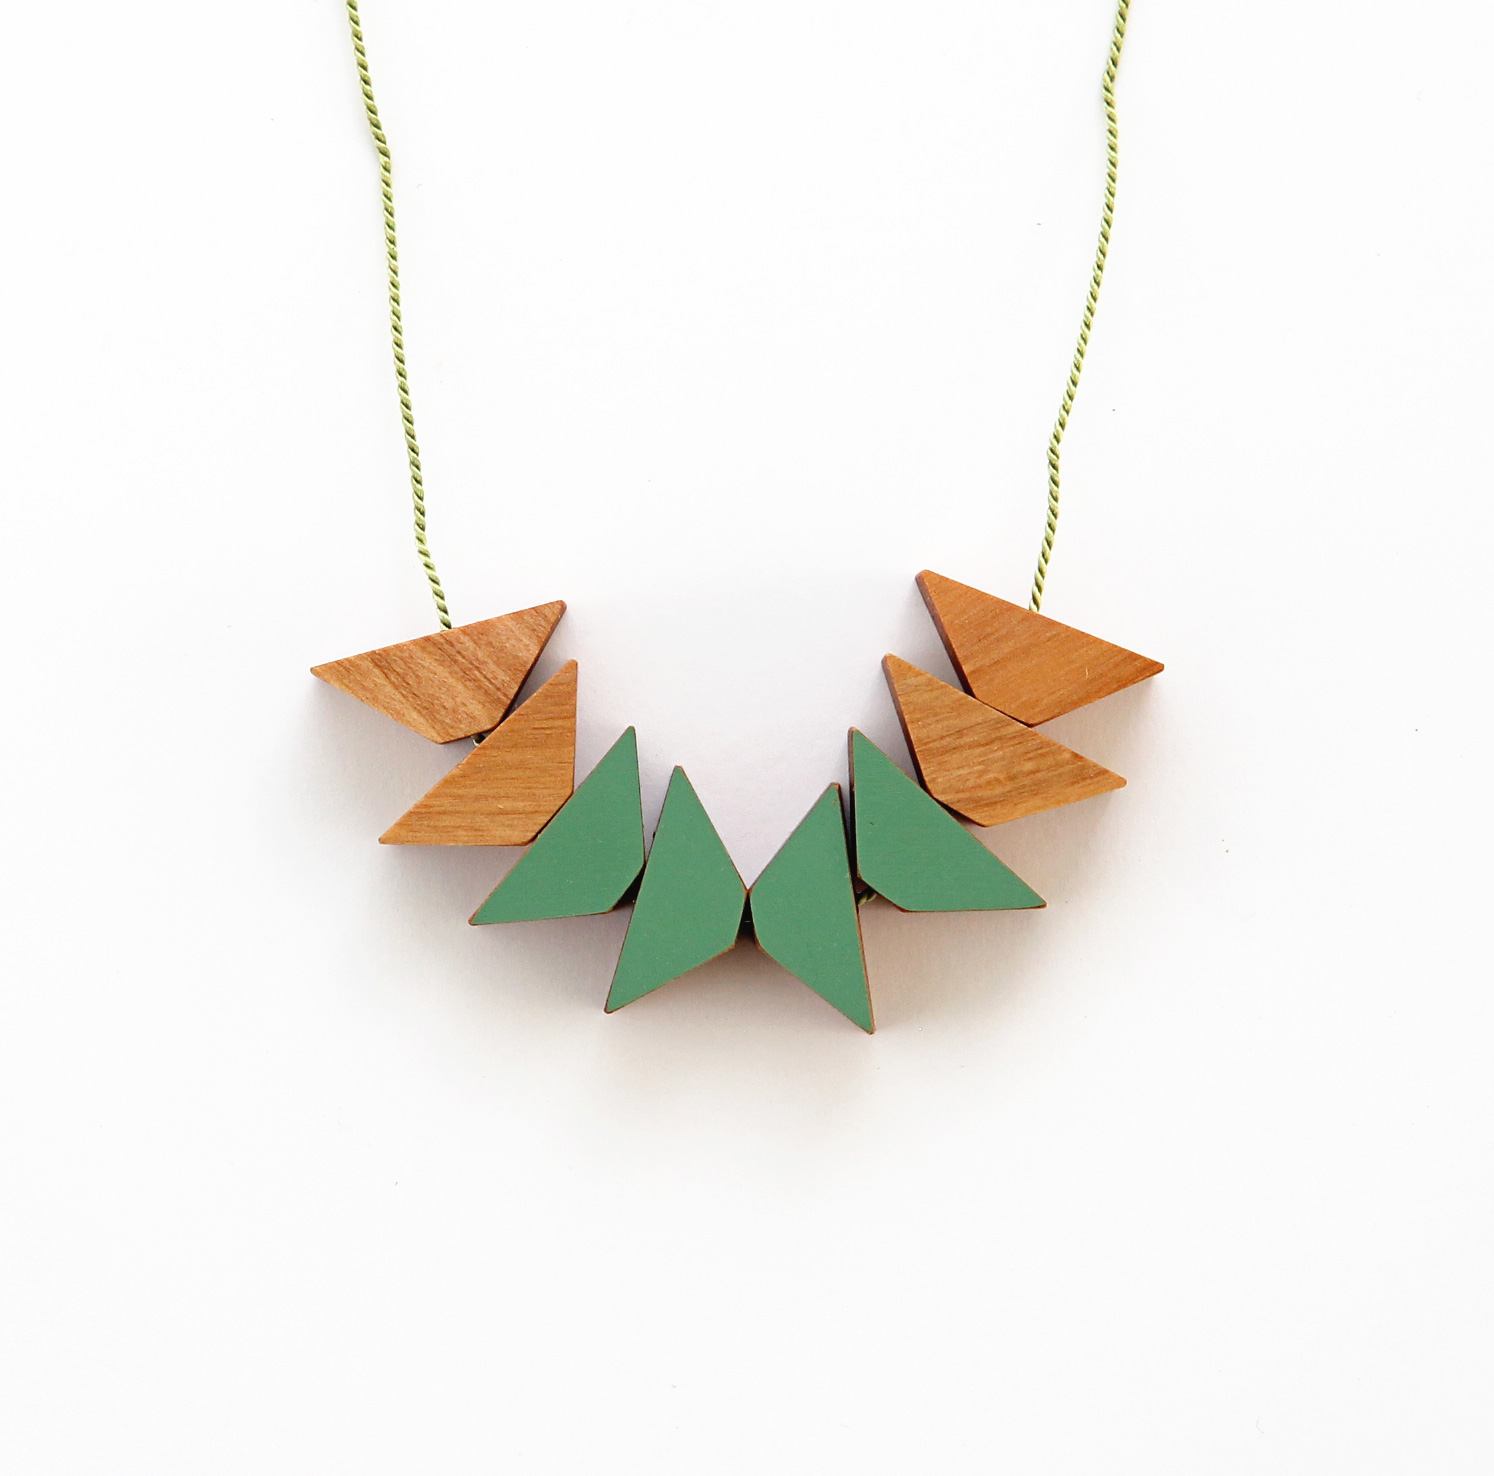 Green triangles x8